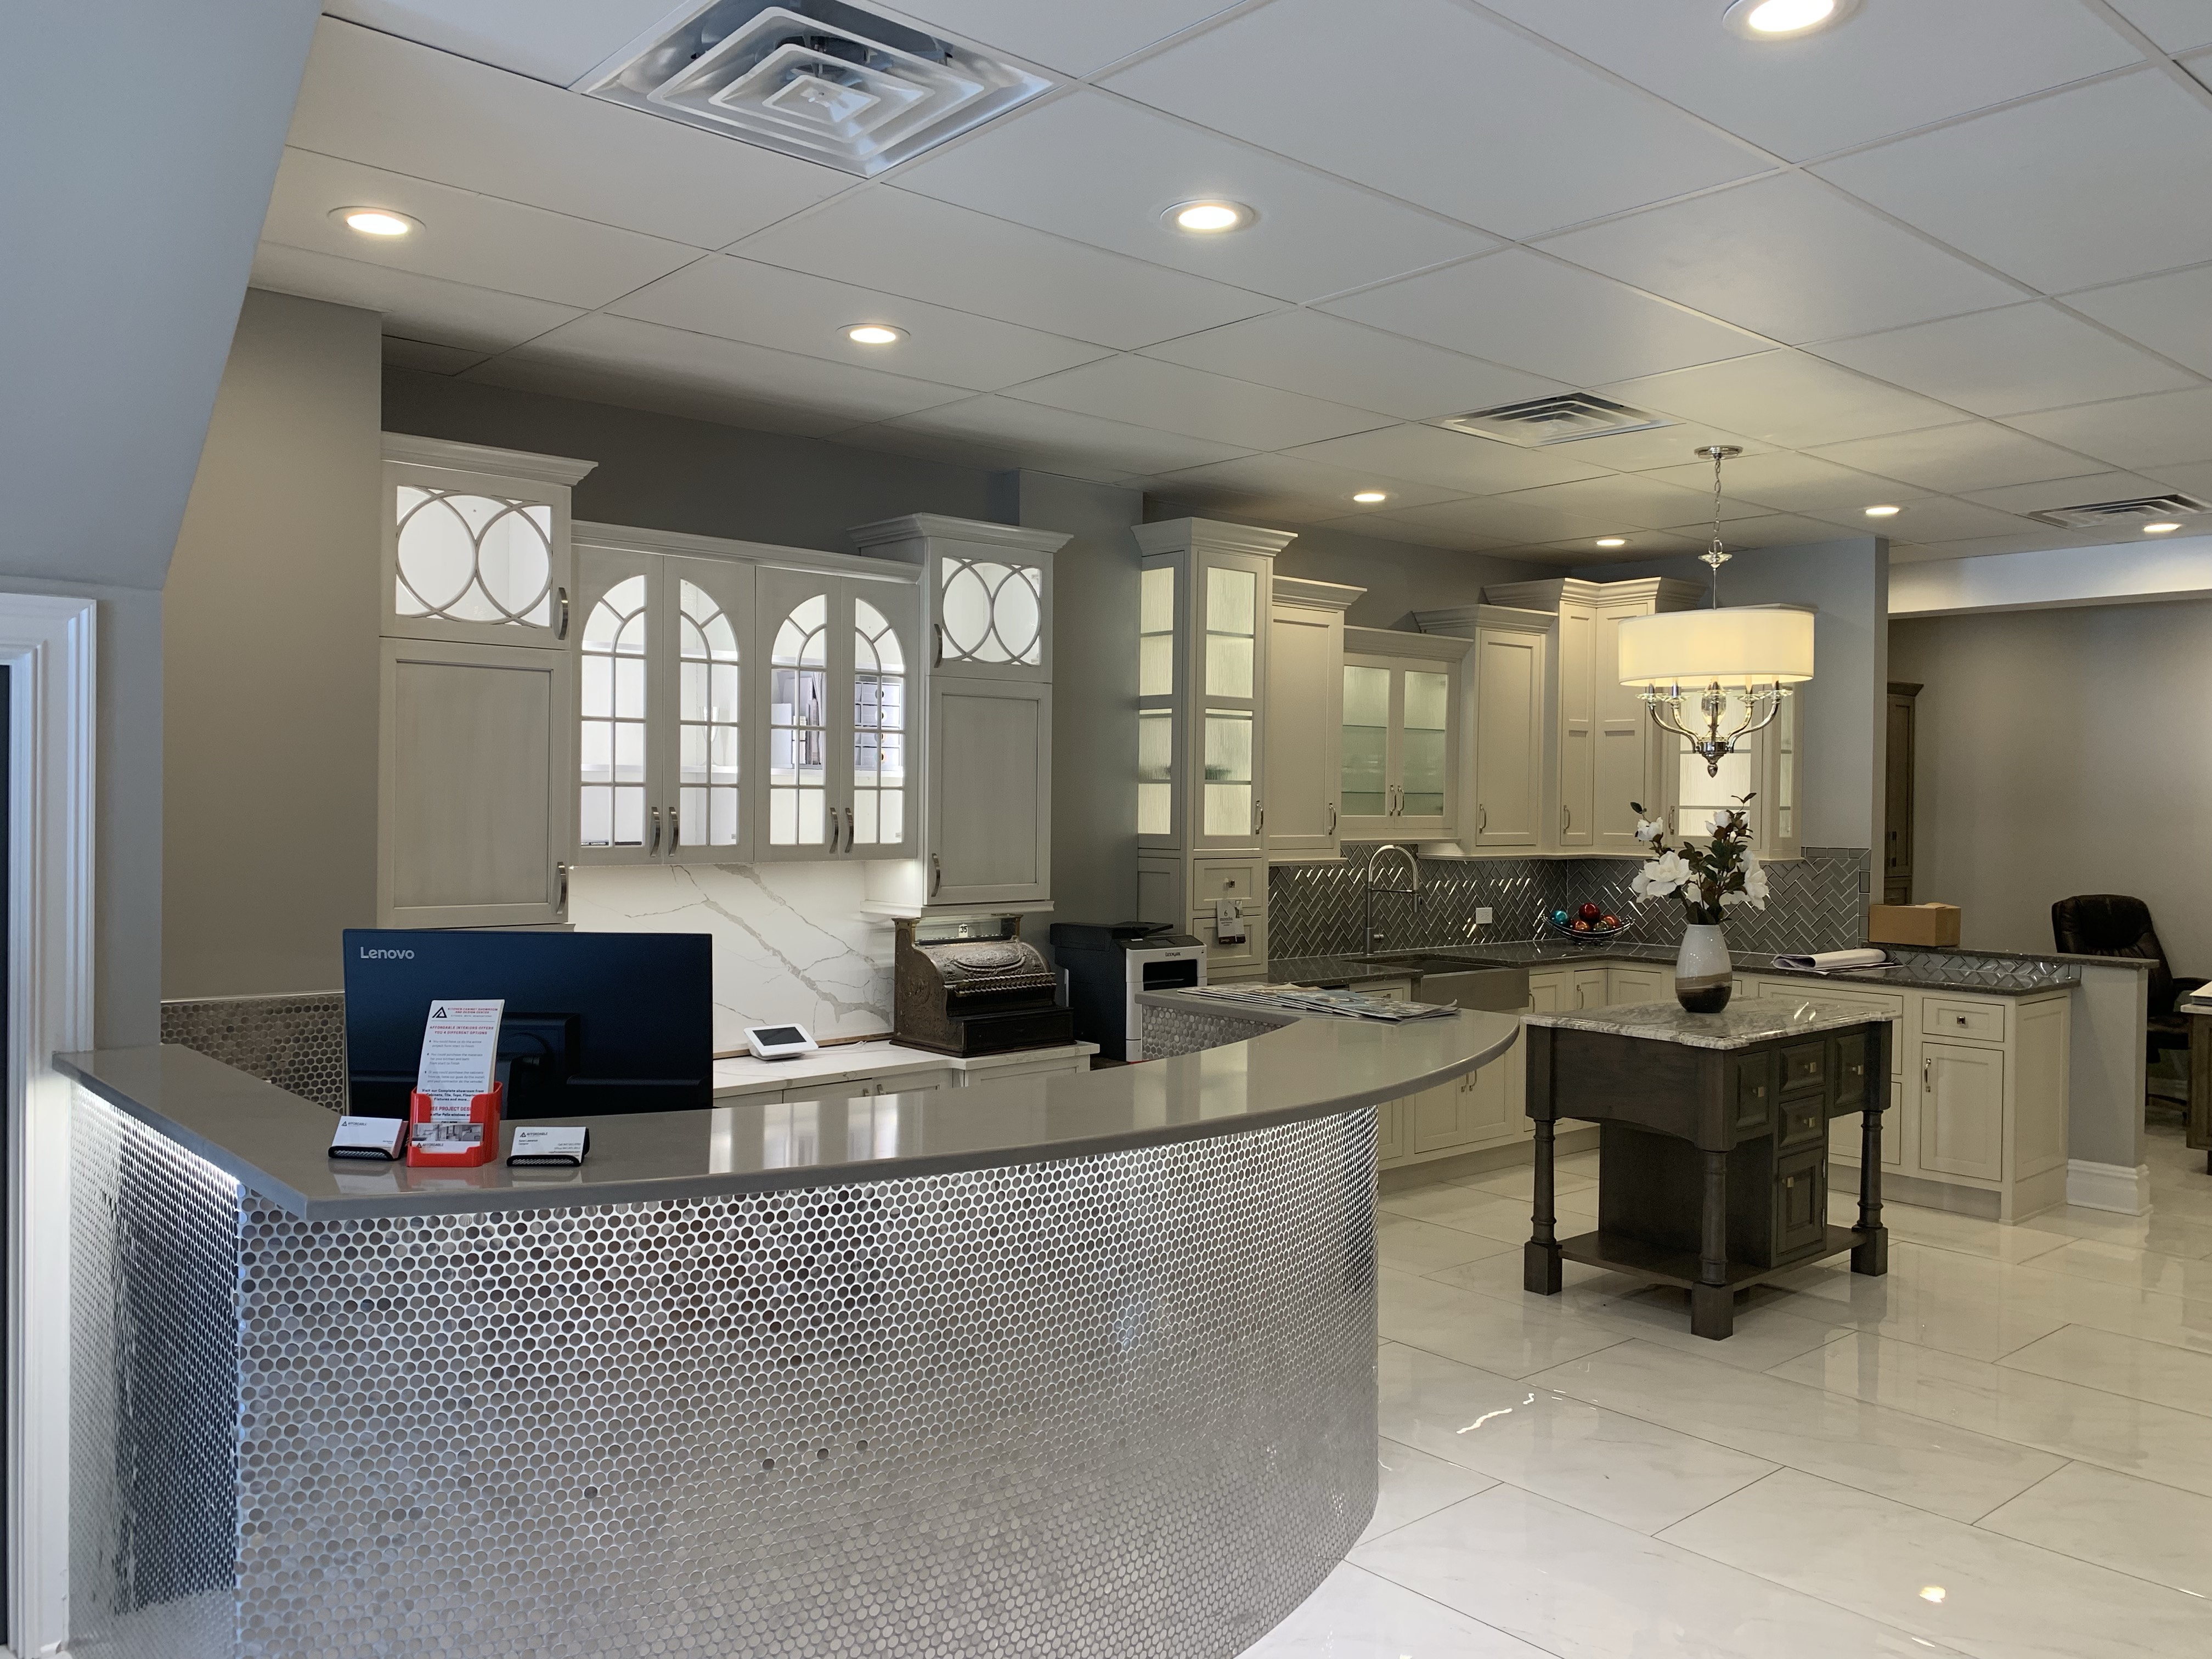 Affordable Interiors - Grayslake, IL reviews | Home Improvements at 122 Center St - Grayslake IL